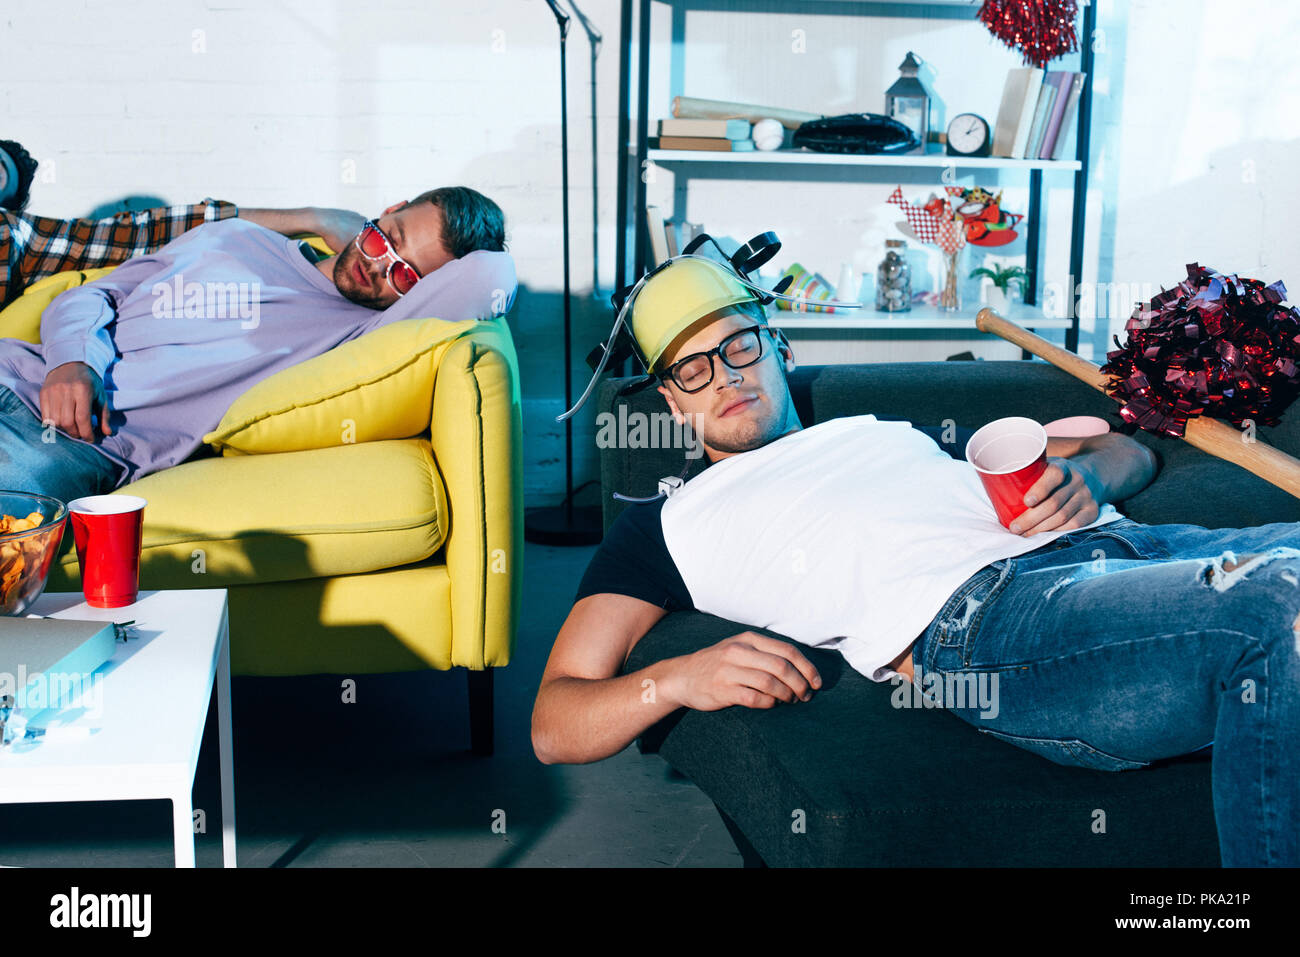 drunk young men sleeping on couches after home party - Stock Image